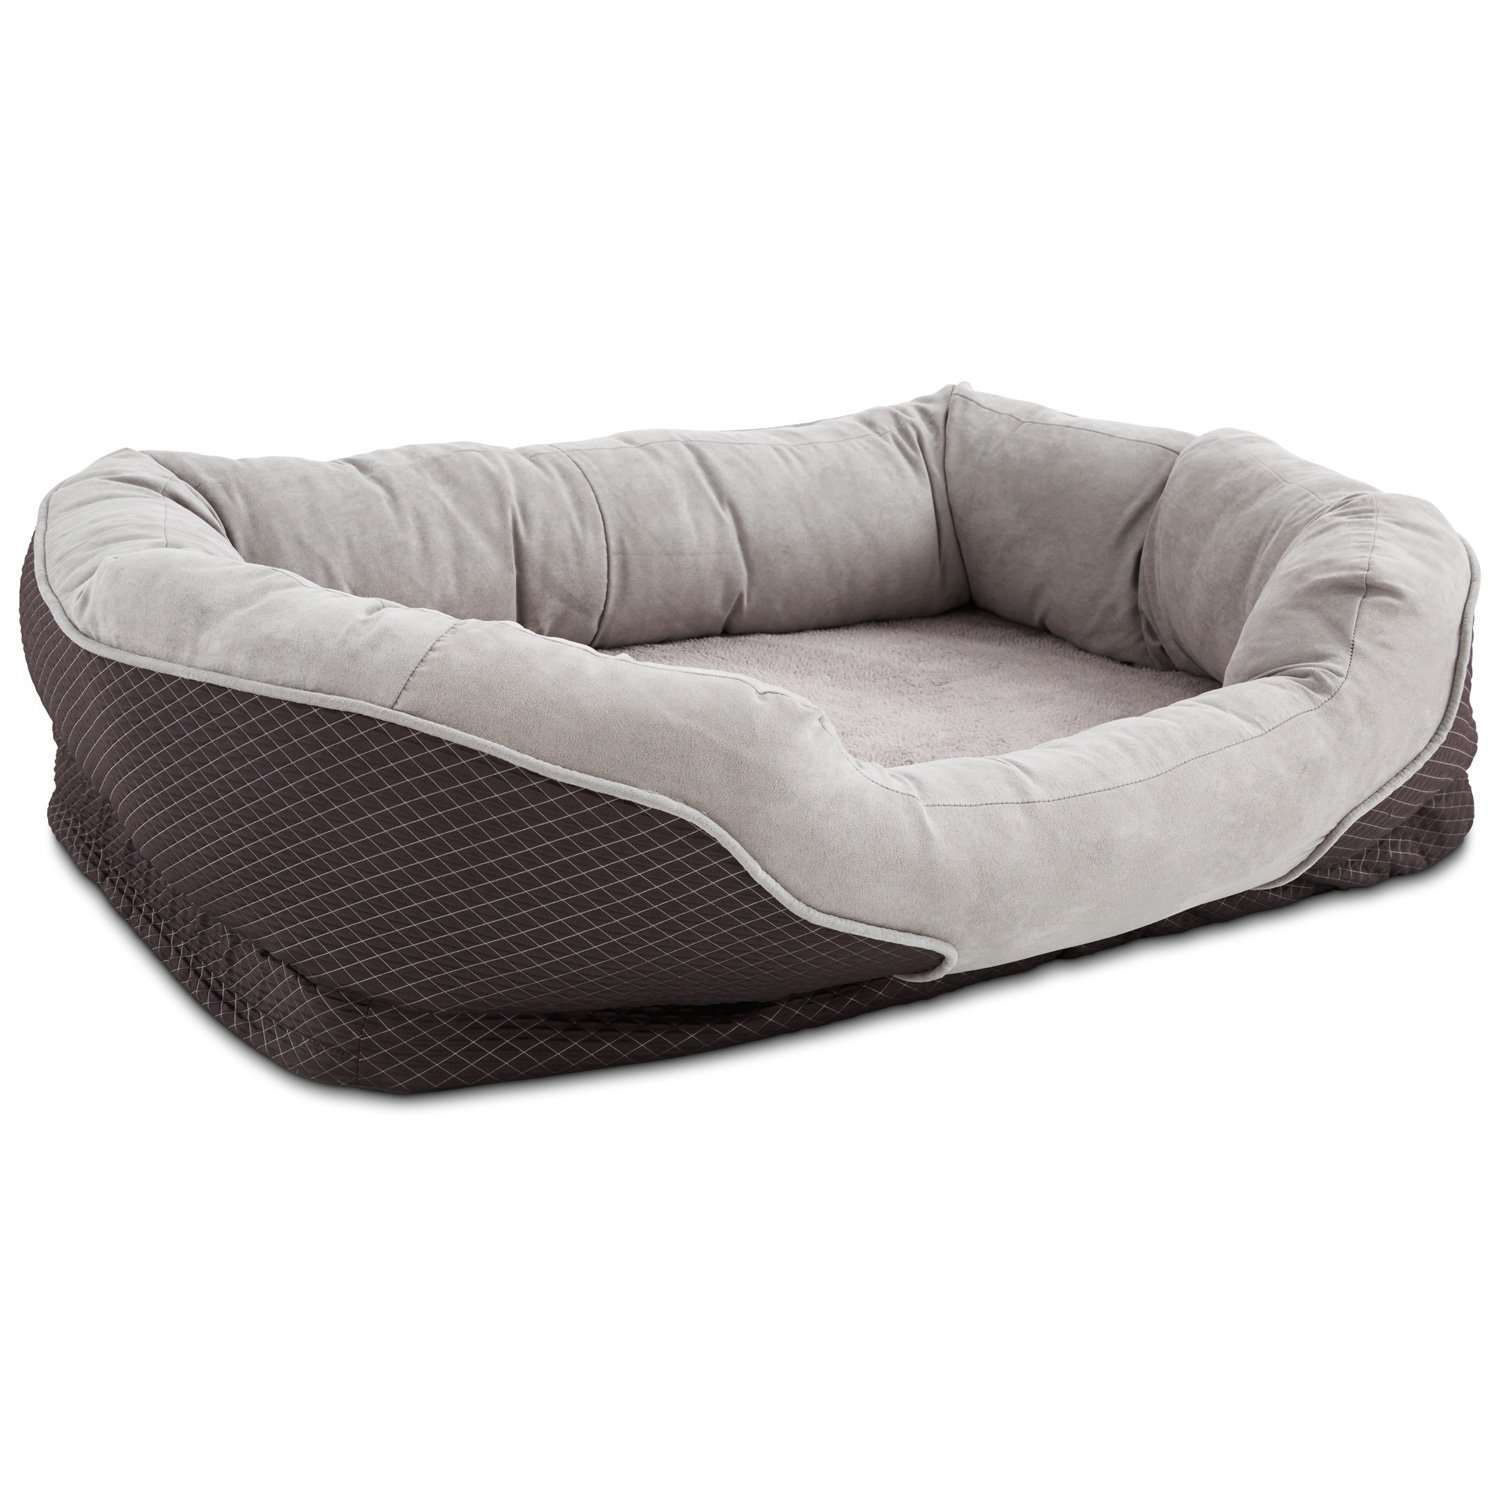 Petco Orthopedic Peaceful Nester Gray Dog Bed, 40 L X 30 W X 10 H, Large